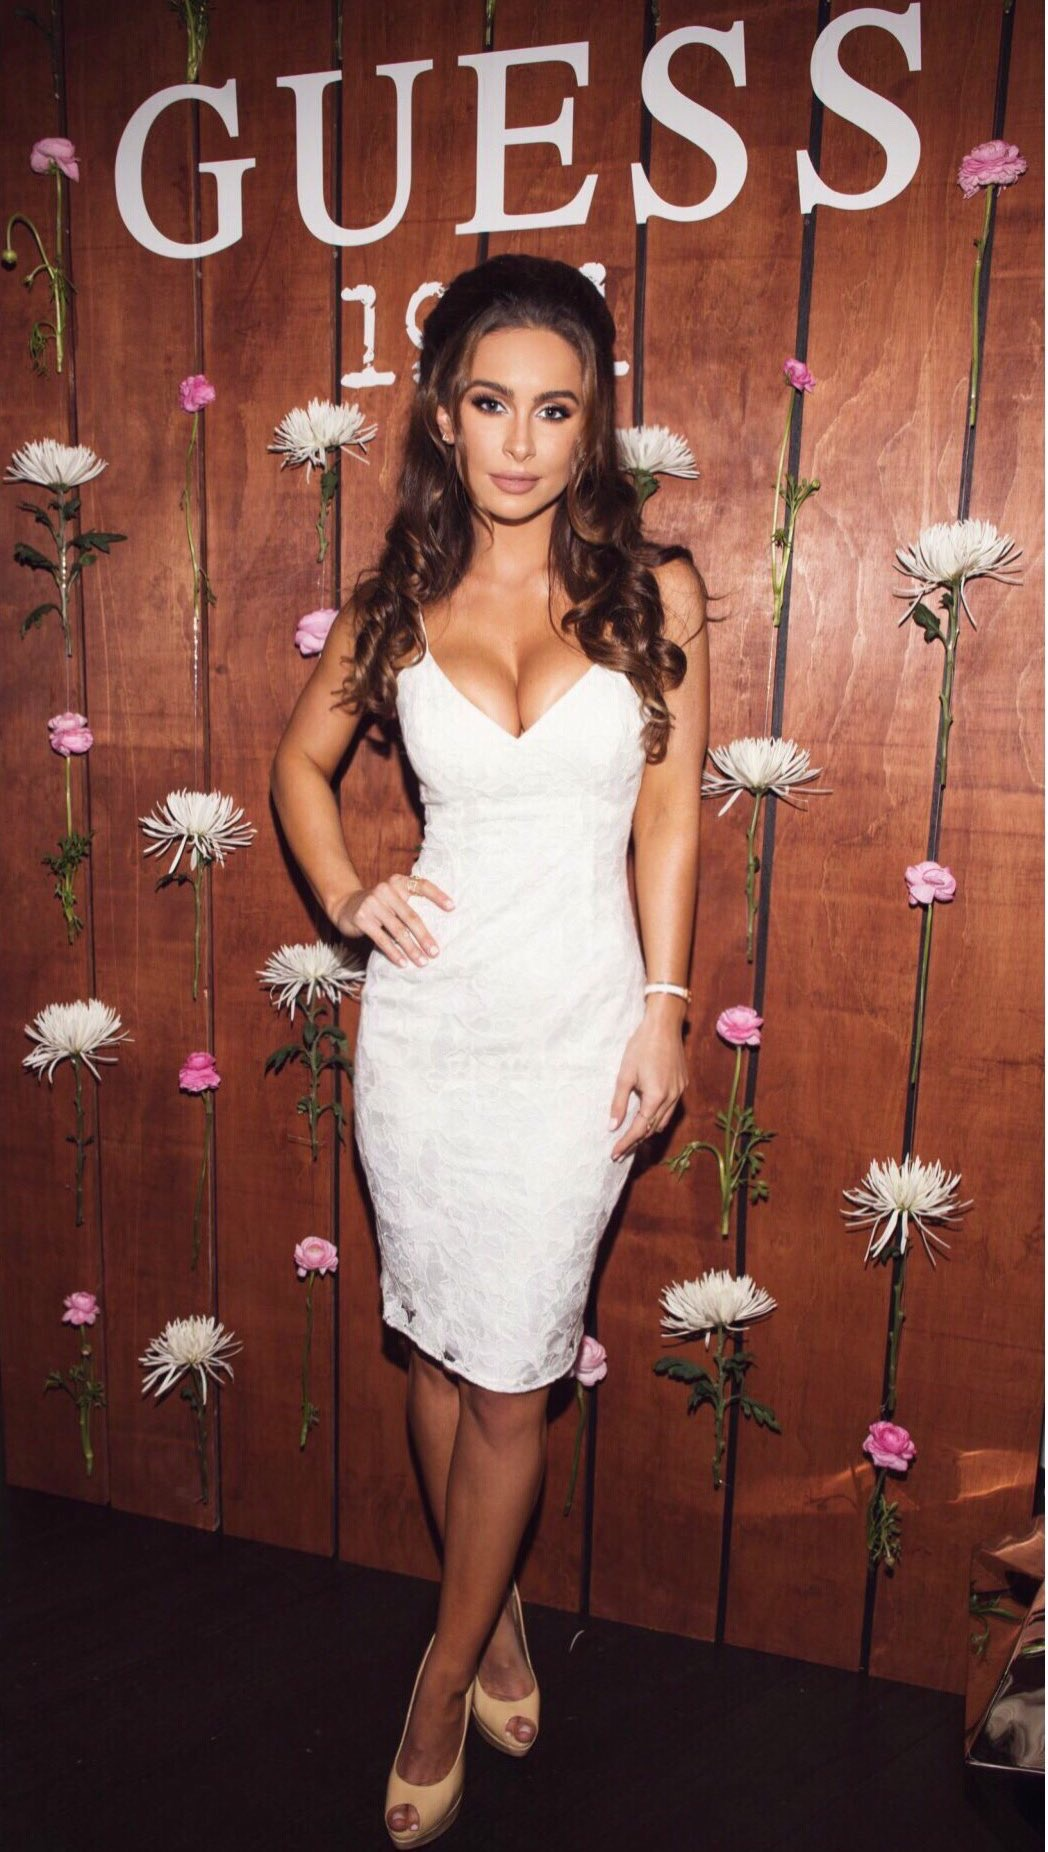 GUESS SPRING CAMPAIGN LAUNCH